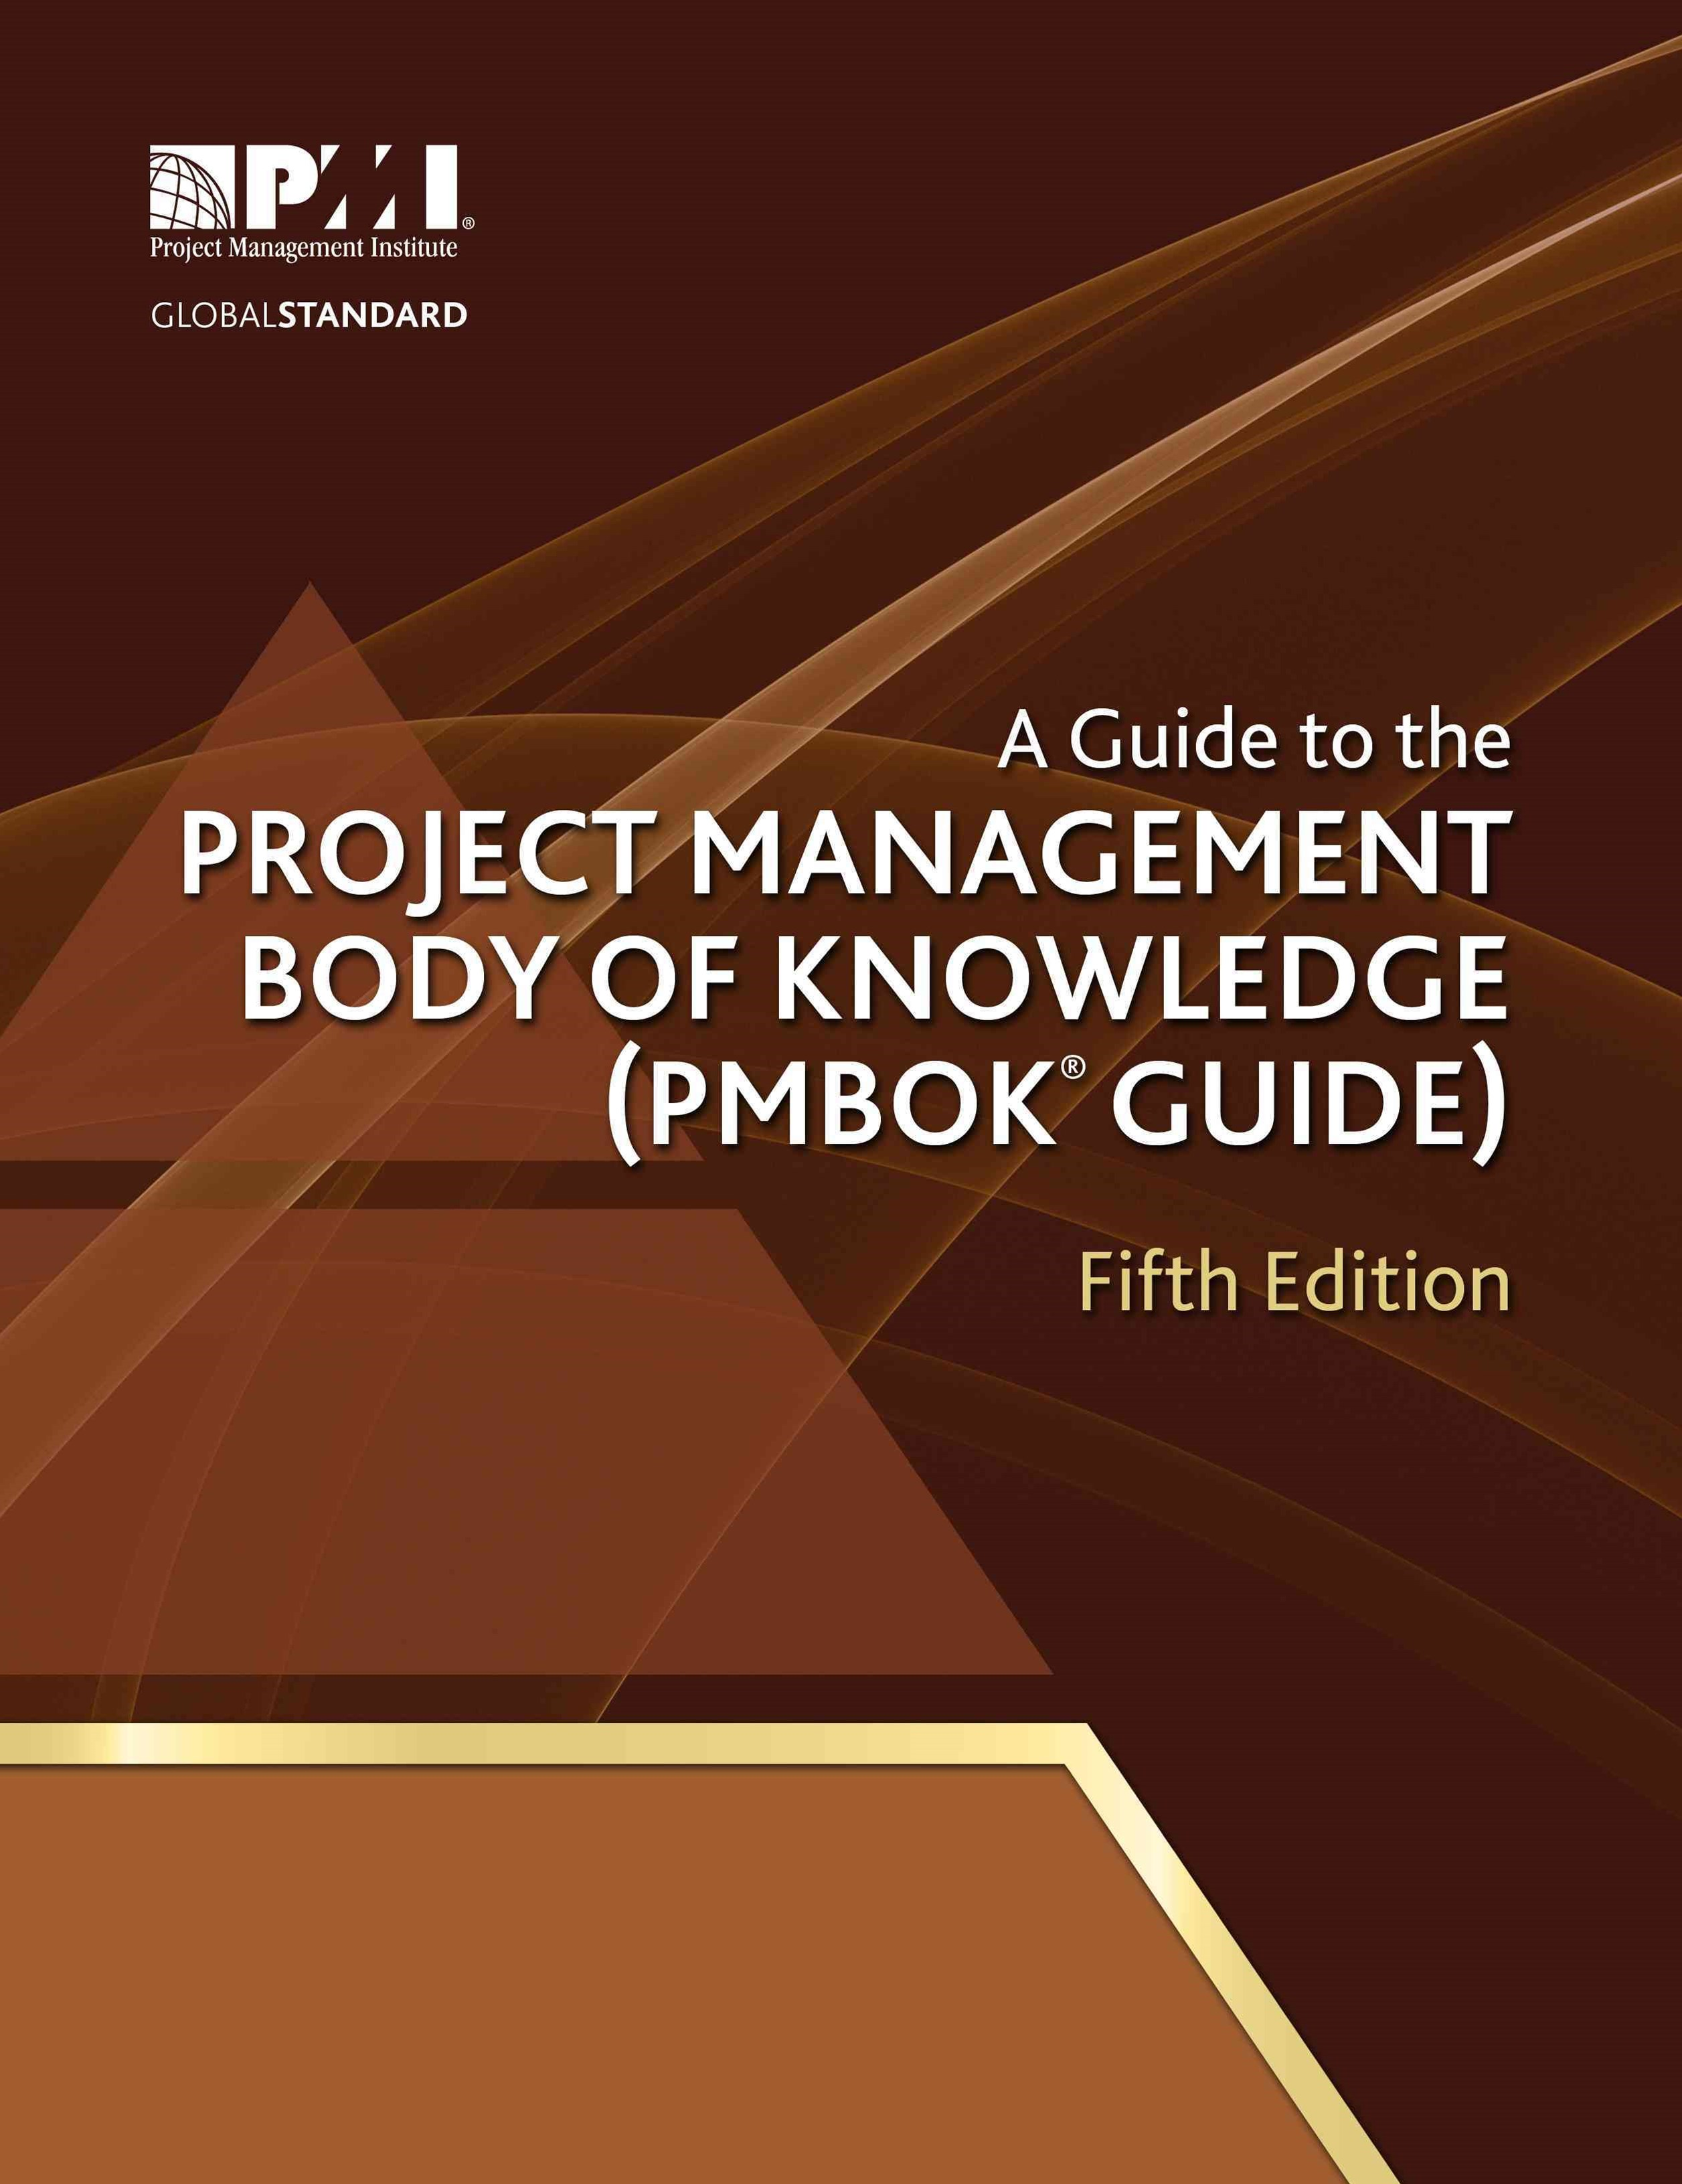 A Guide to the Project Management Body of Knowledge (PMBOK-« Guide)